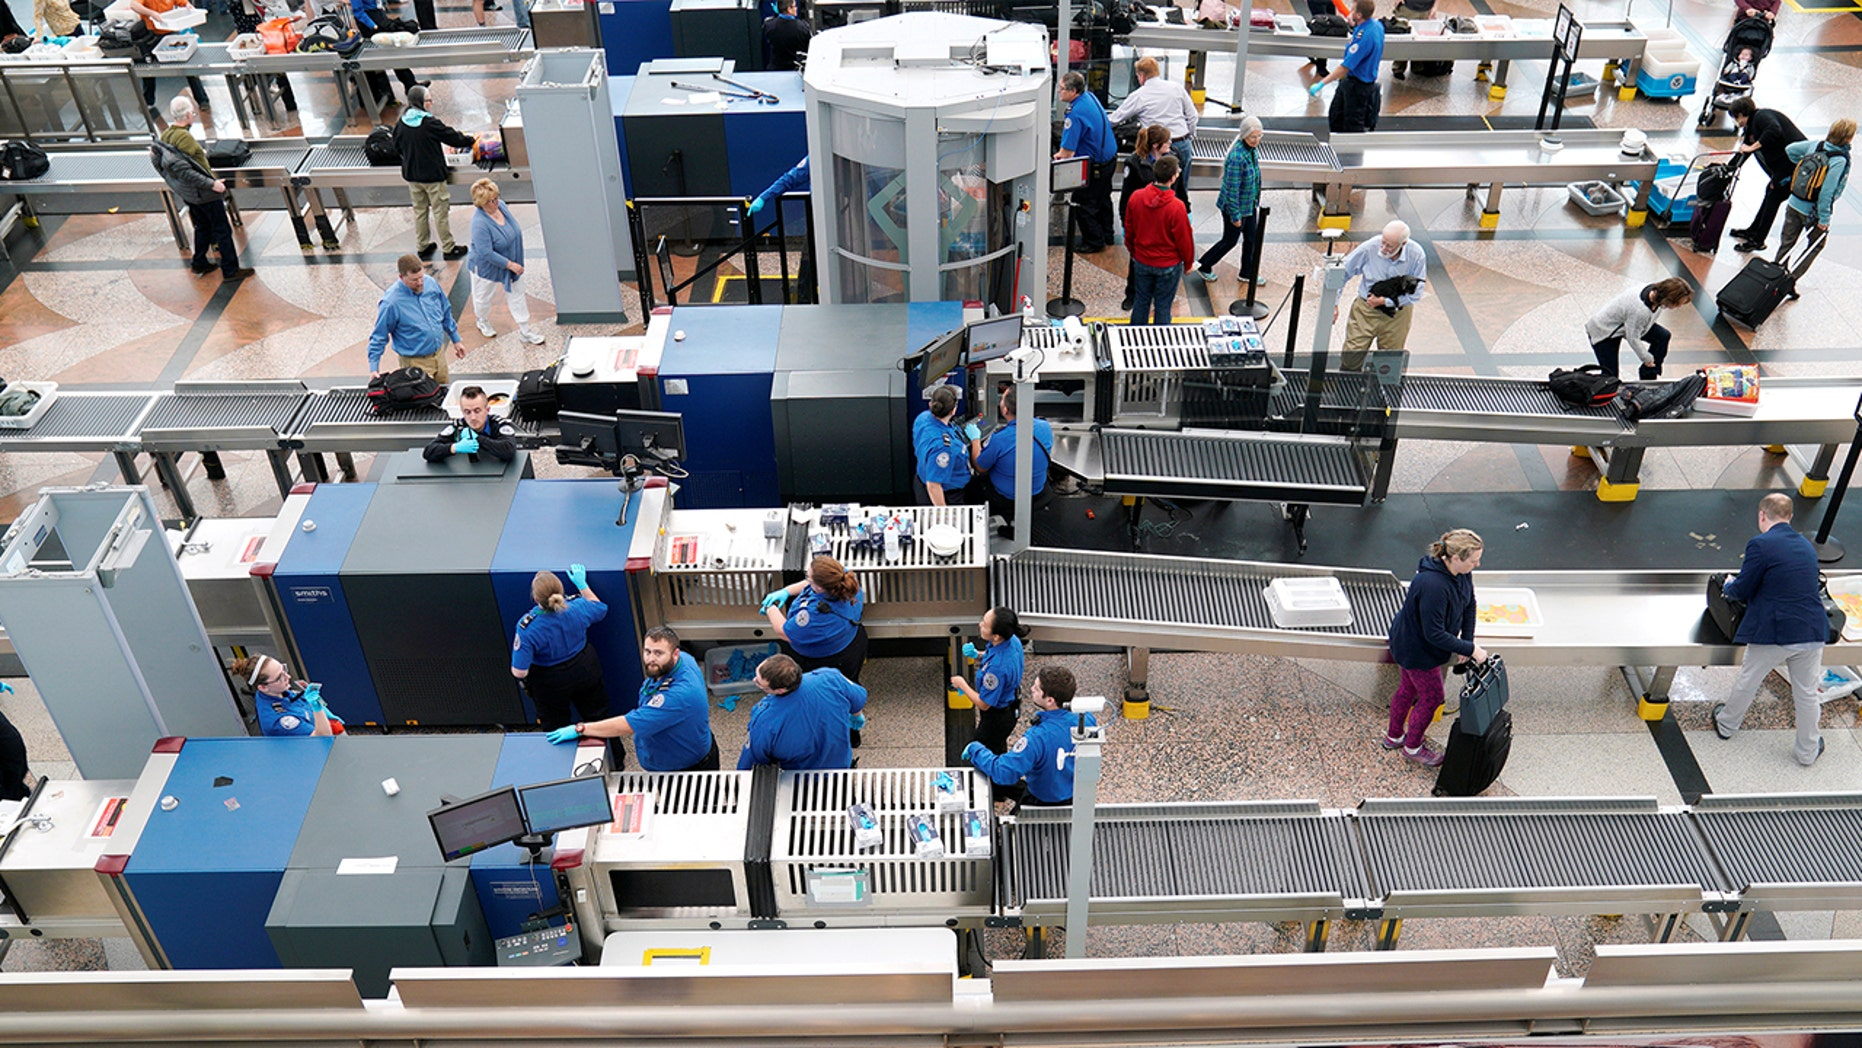 Transportation Security Administration officials had a record day on May 3.